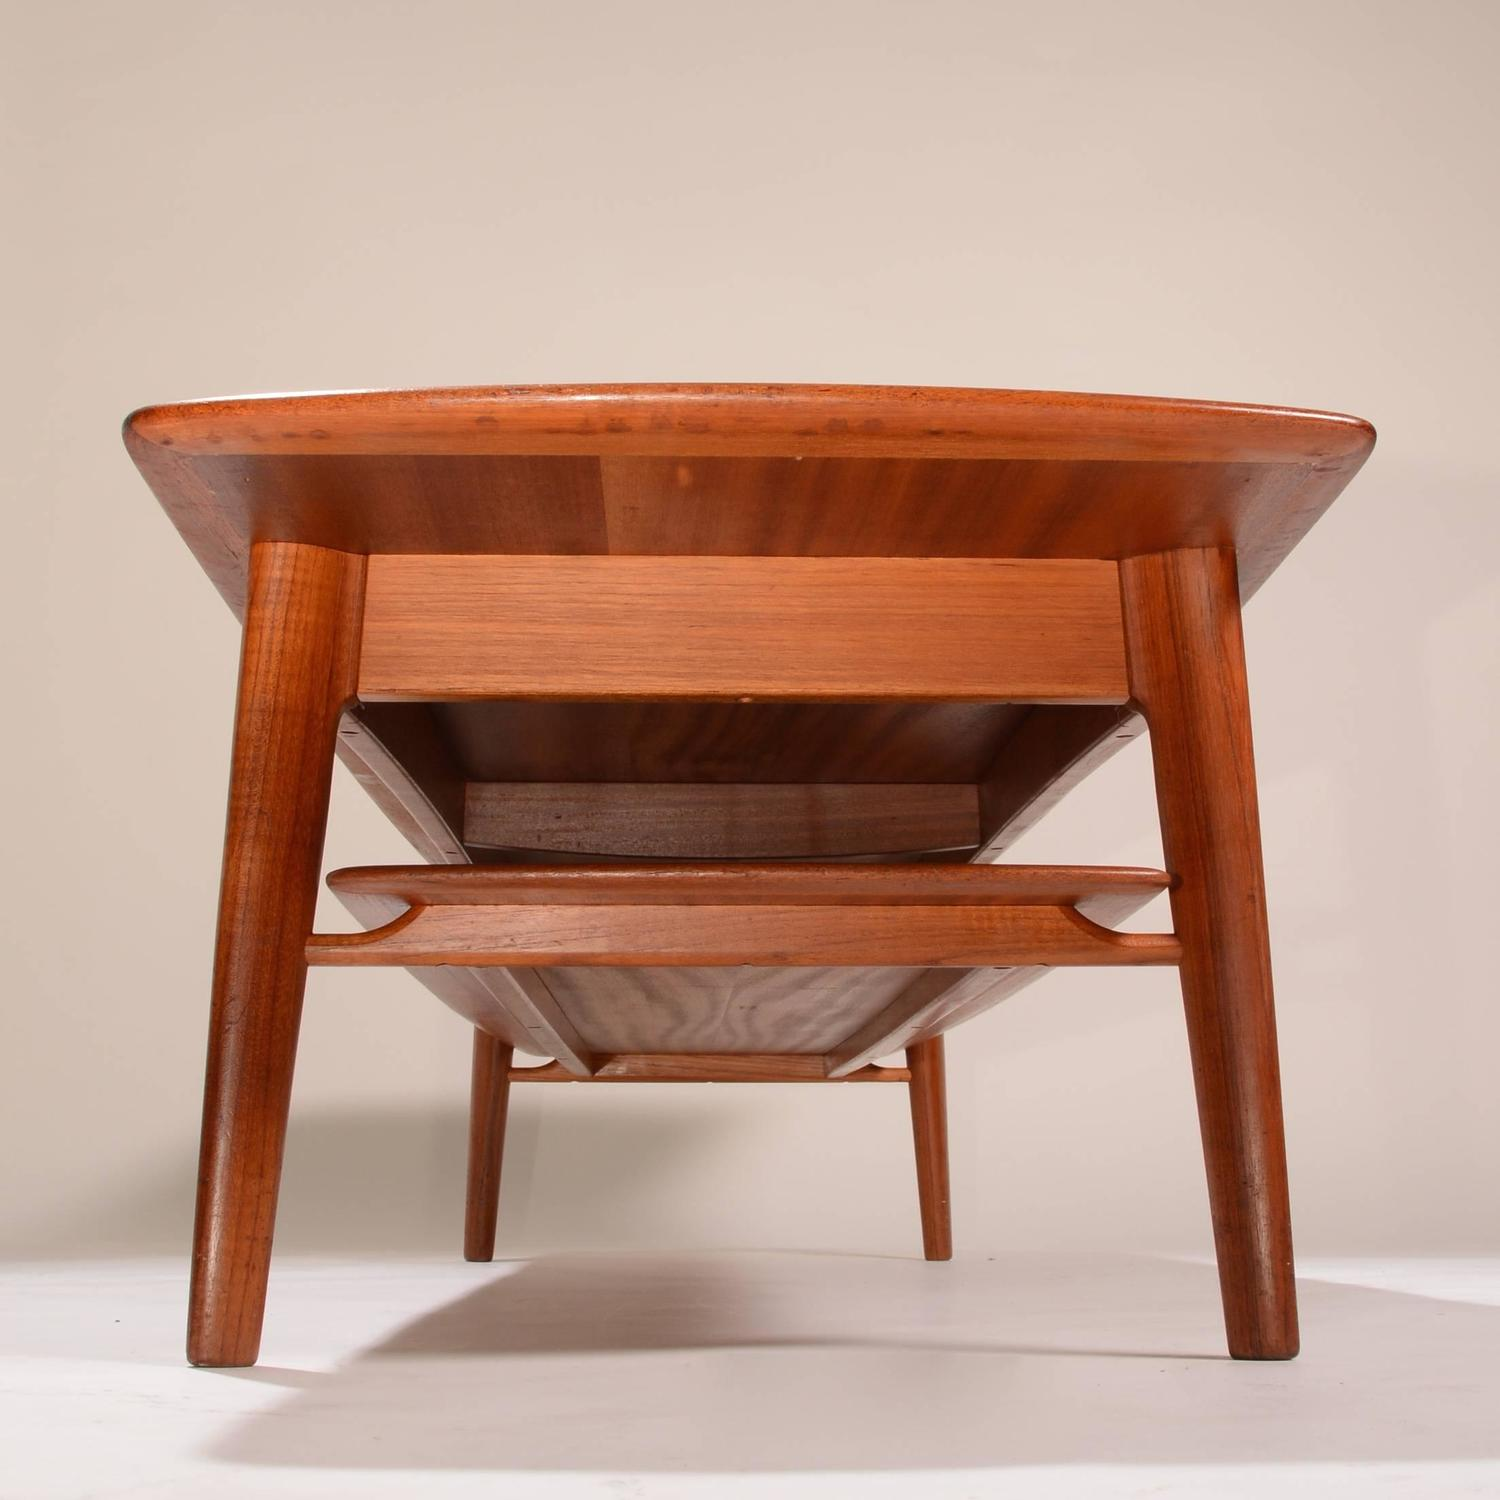 Early danish modern teak coffee table with bottom shelf for sale at 1stdibs Modern teak coffee table